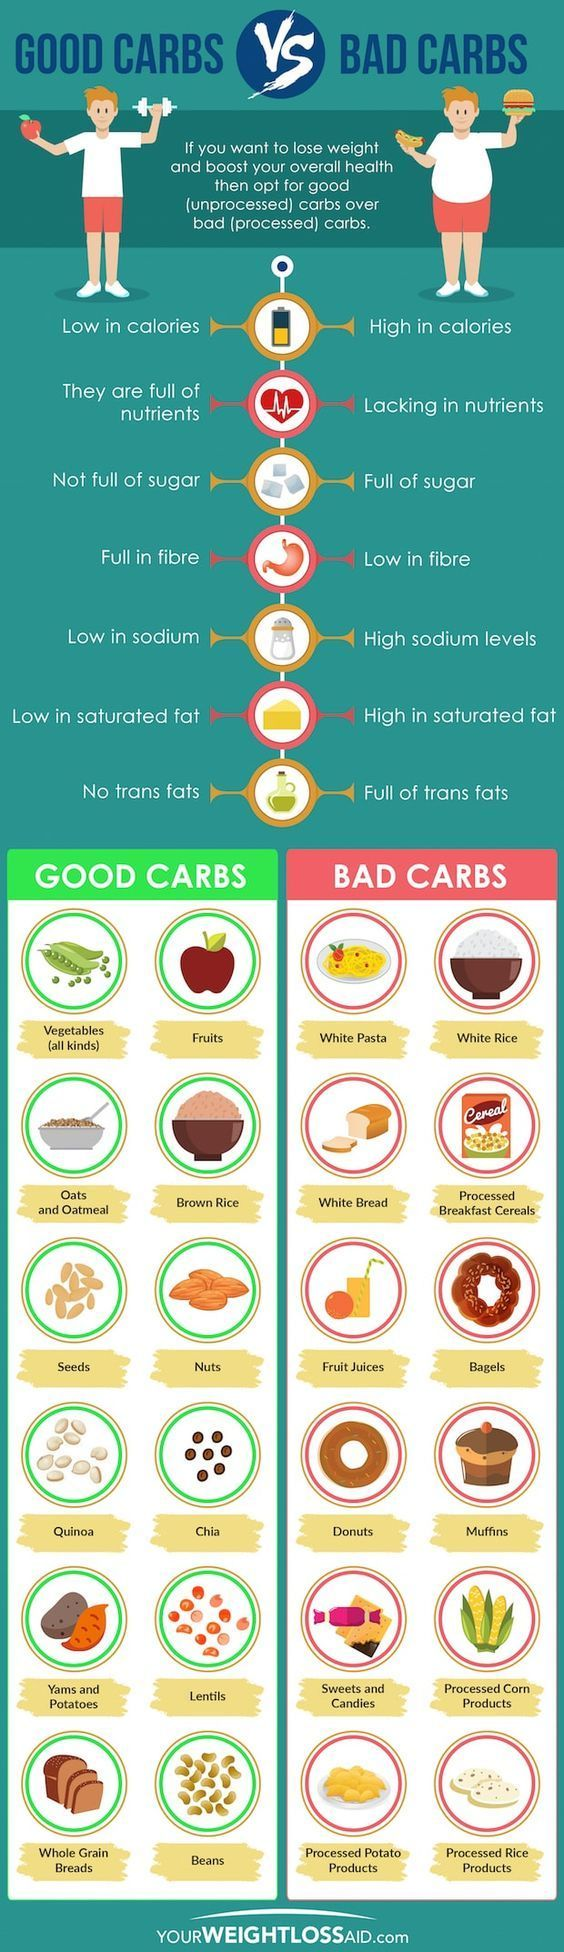 All about Weight loss #weightloss goals you should opt for good unprocessed carbs over bad processed c...